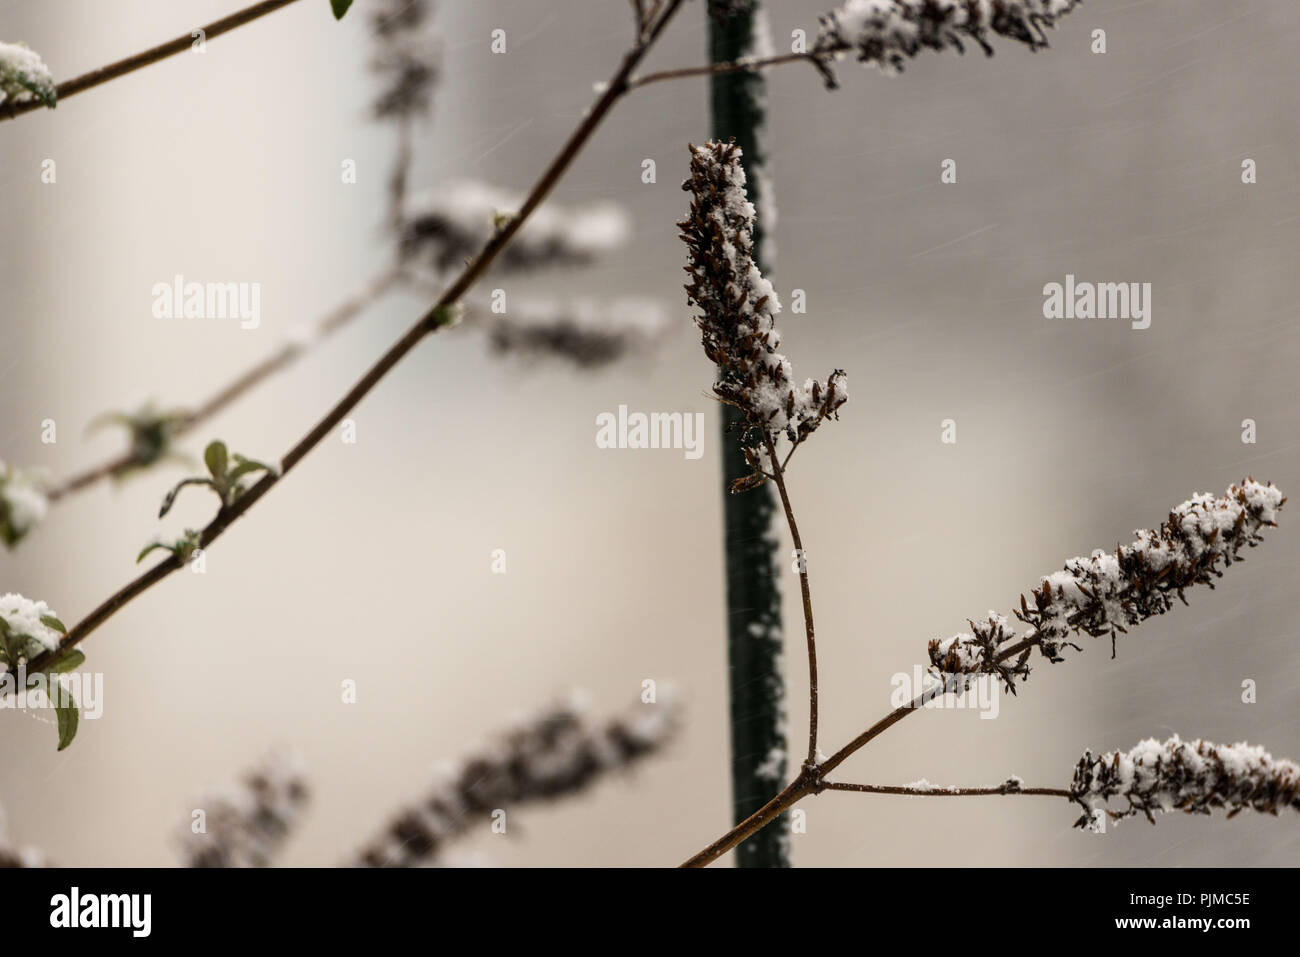 Branches in winter, summer lilac - Stock Image